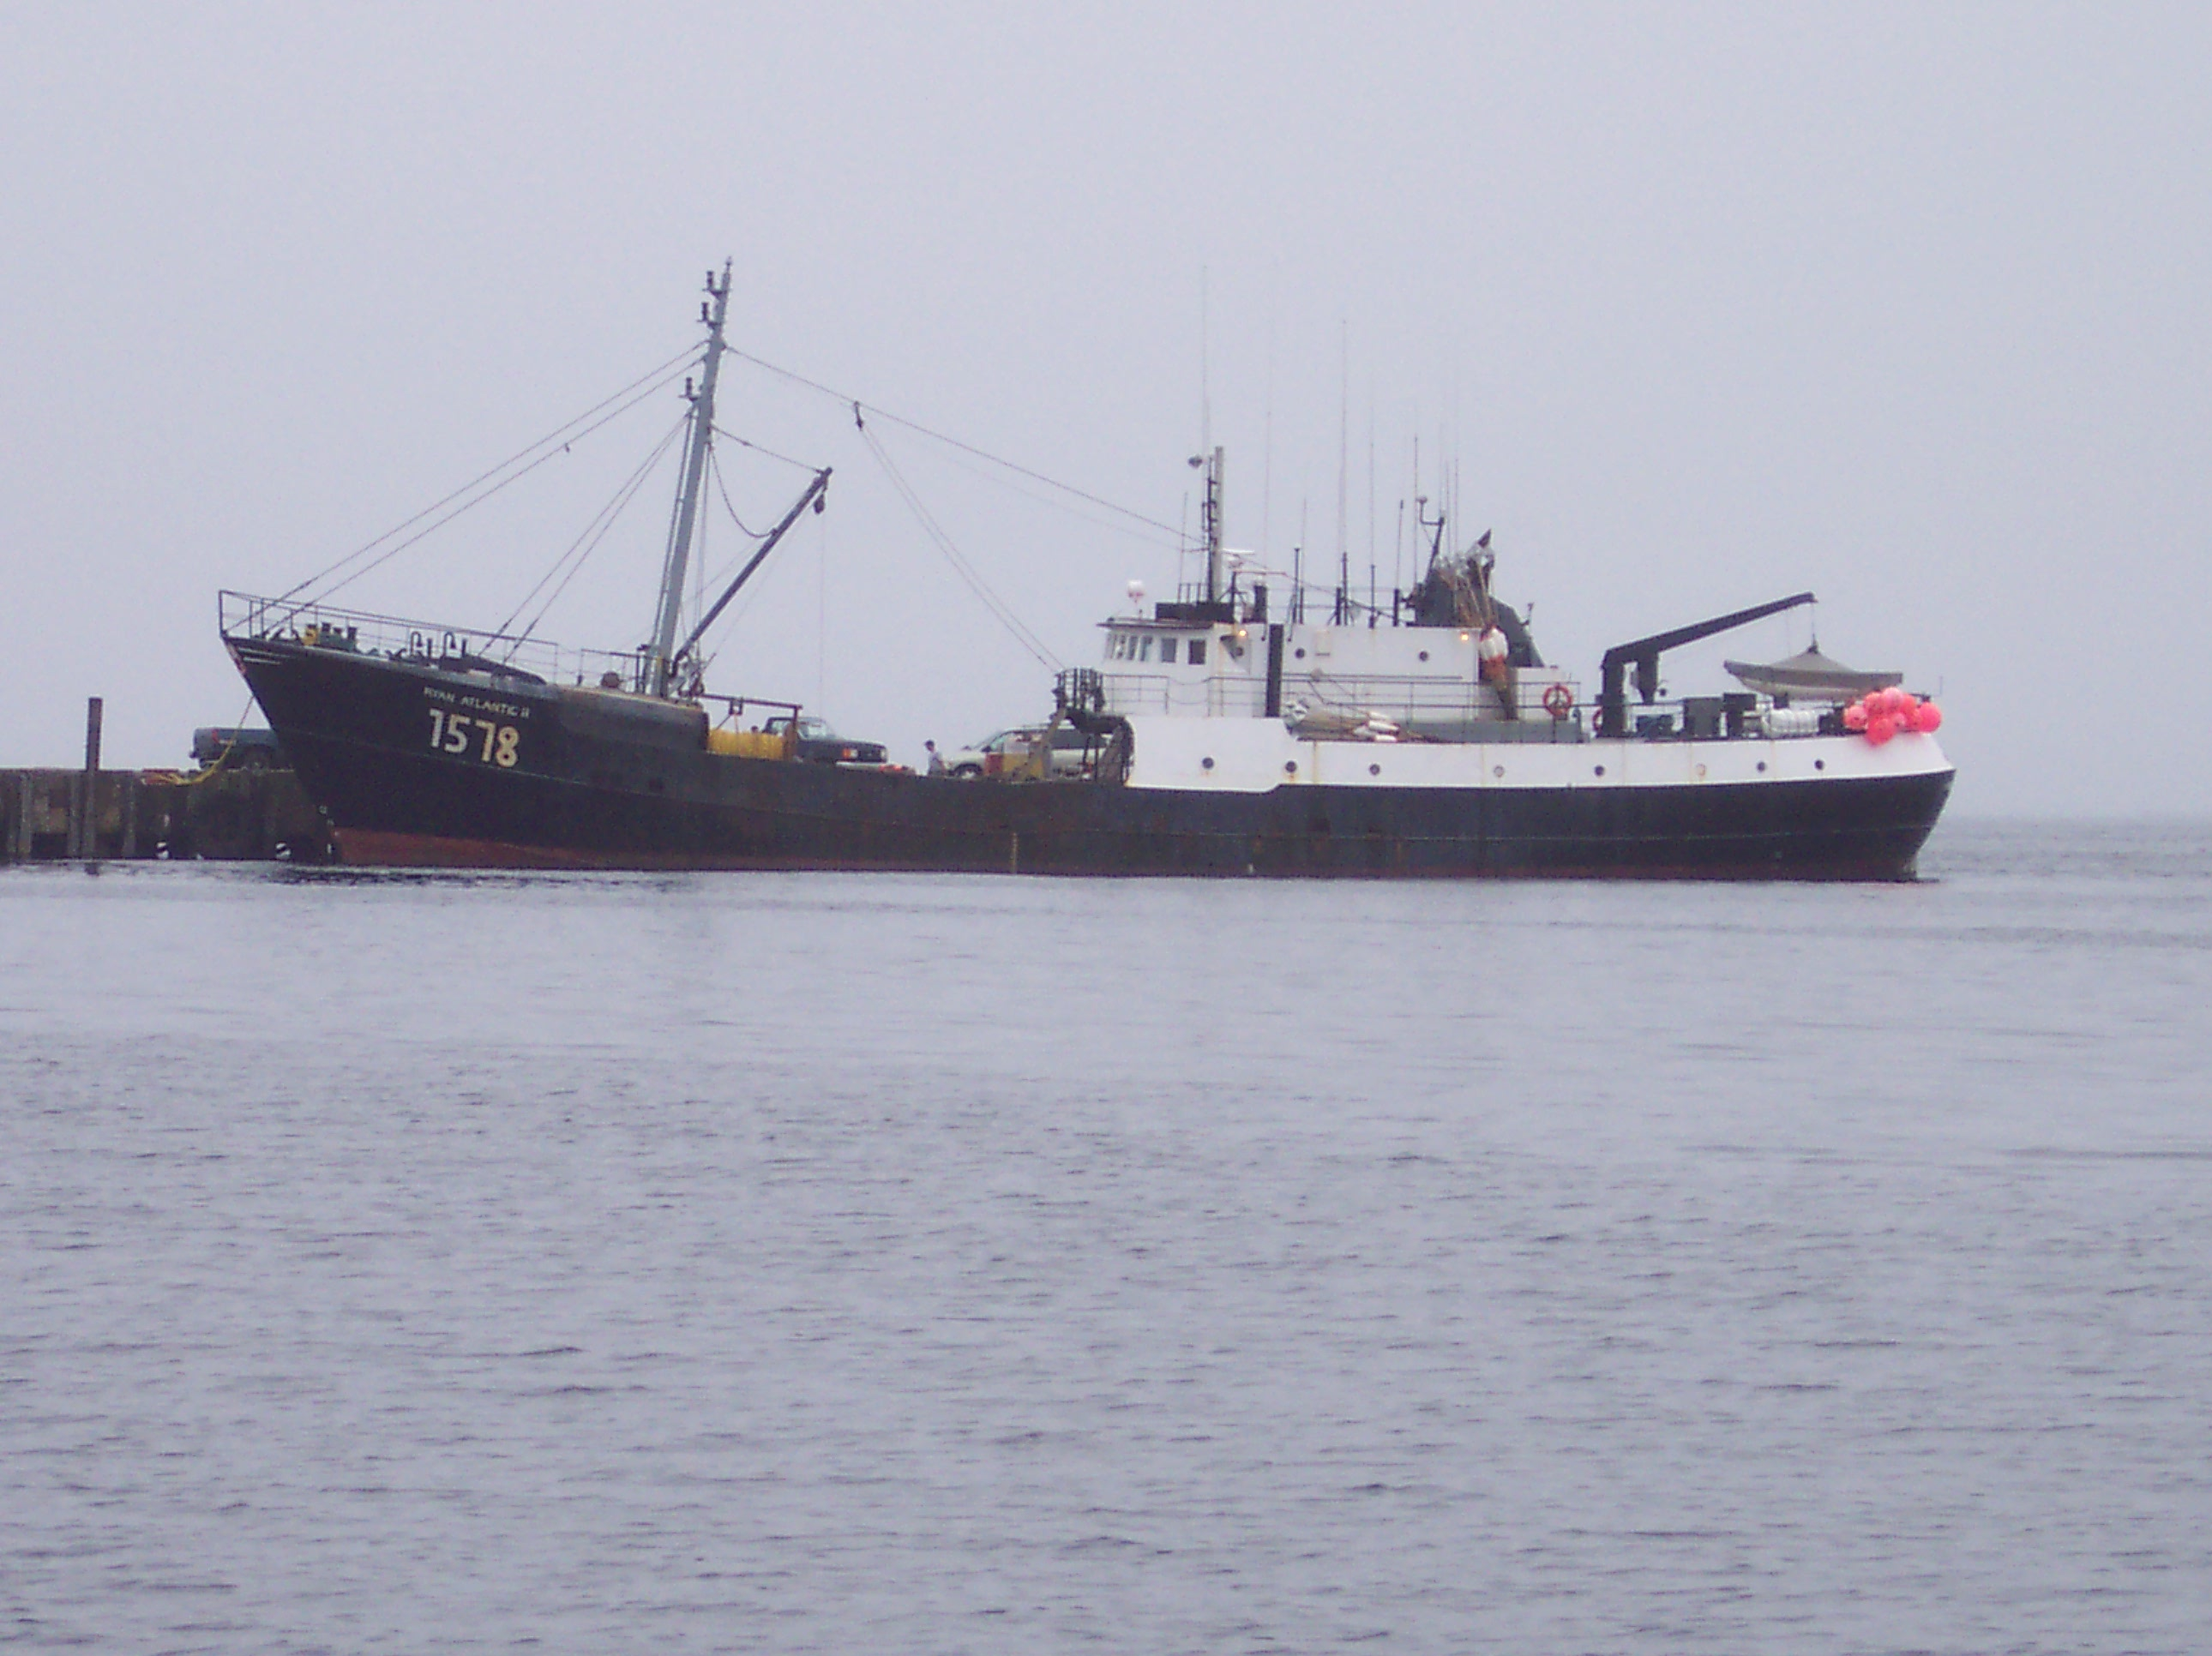 003 Ryan Atlantic II, an ofshore lobster boat would be our support vessel.